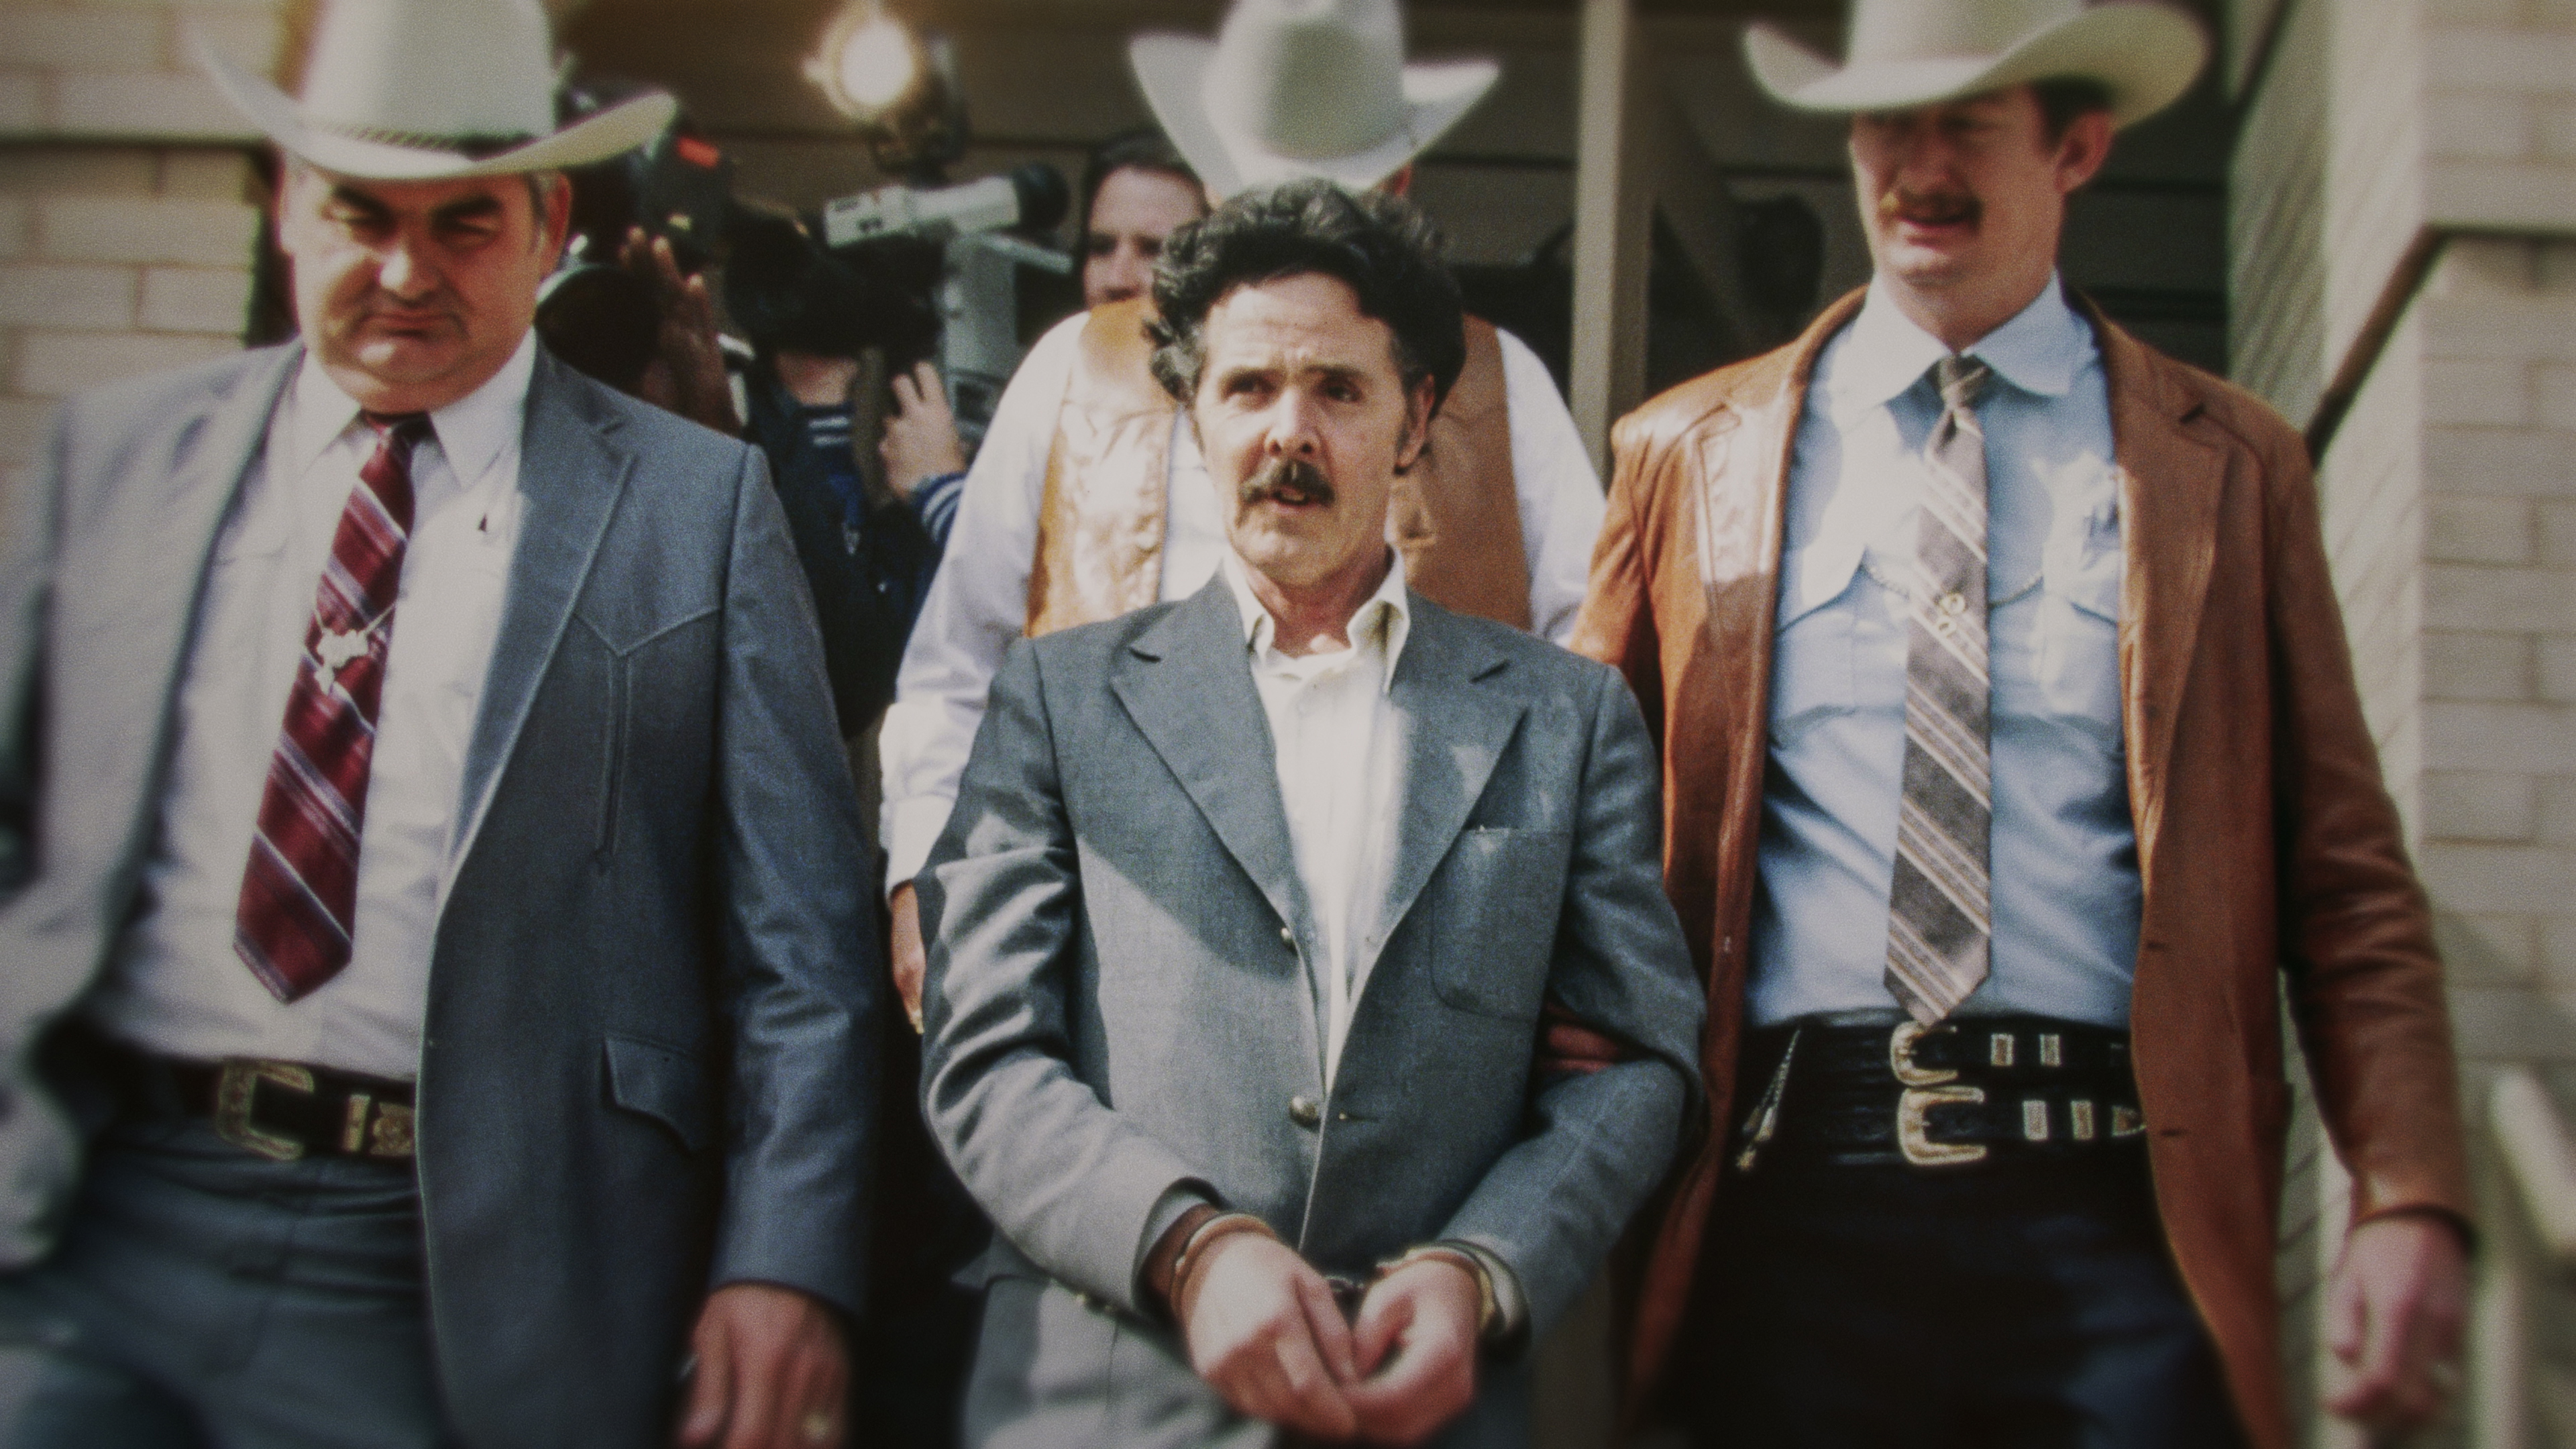 The Story of Henry Lee Lucas, the Notorious Subject of Netflix's The Confession Killer